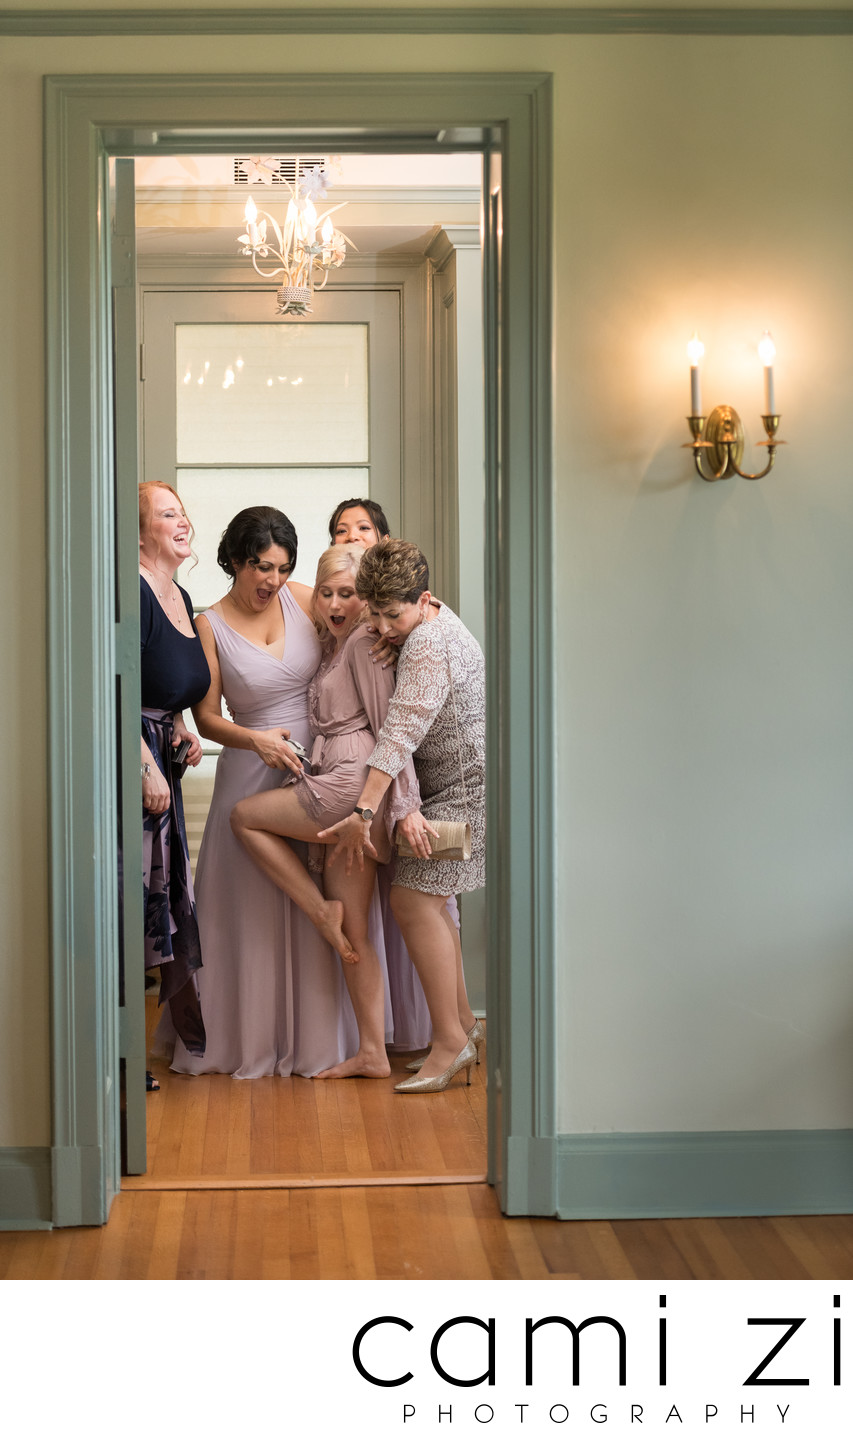 Fun Portrait Bridesmaids Getting Ready